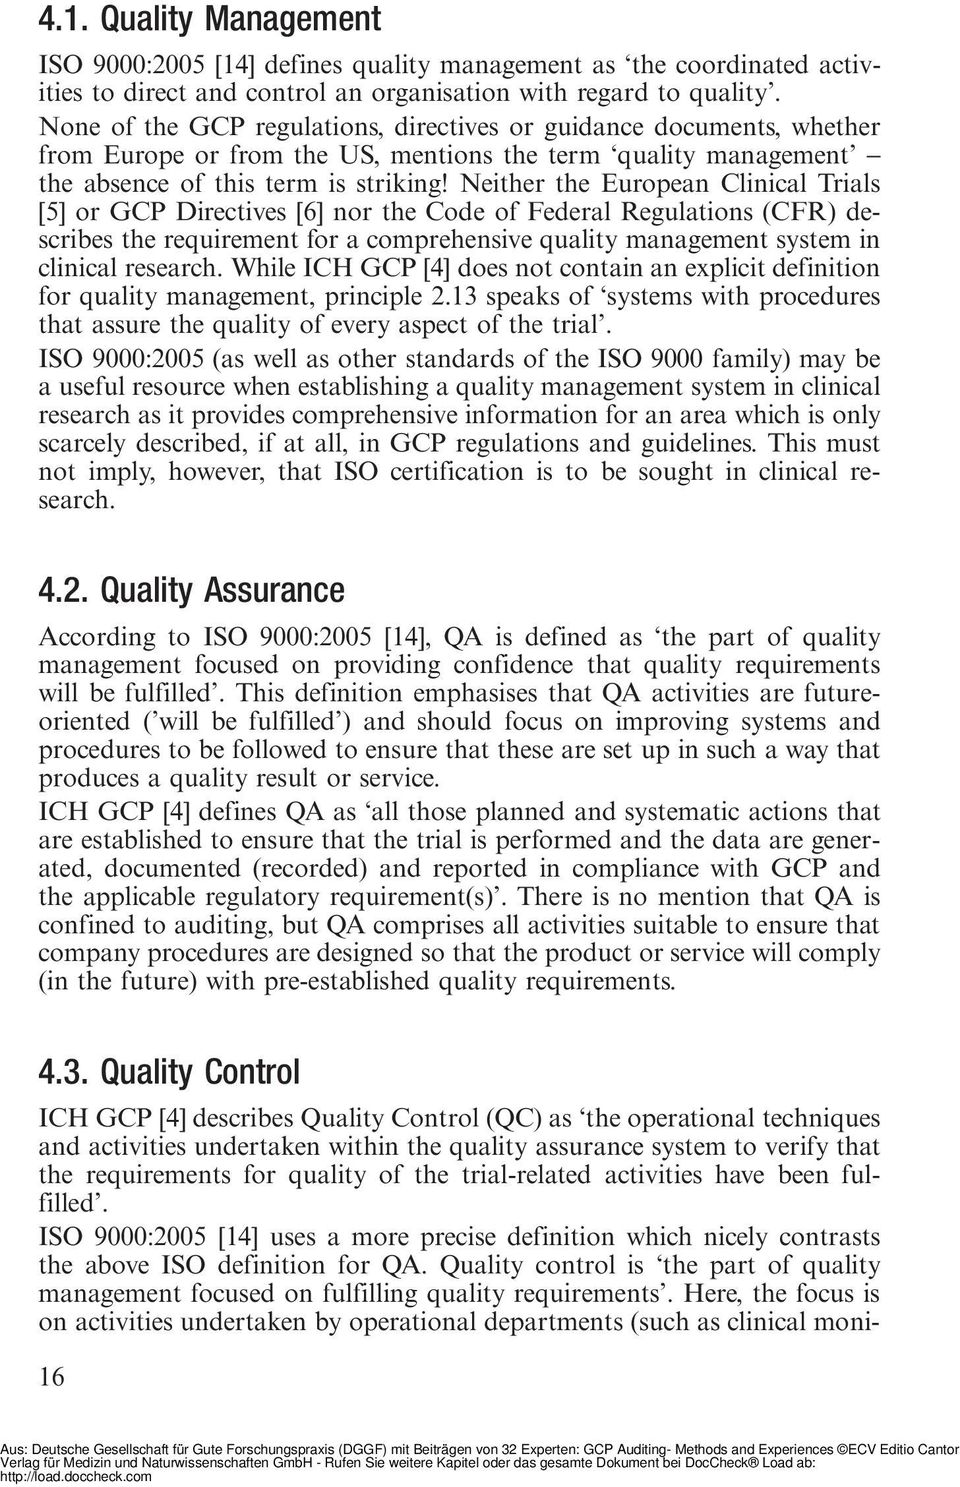 Neither the European Clinical Trials [5] or GCP Directives [6] nor the Code of Federal Regulations (CFR) describes the requirement for a comprehensive quality management system in clinical research.